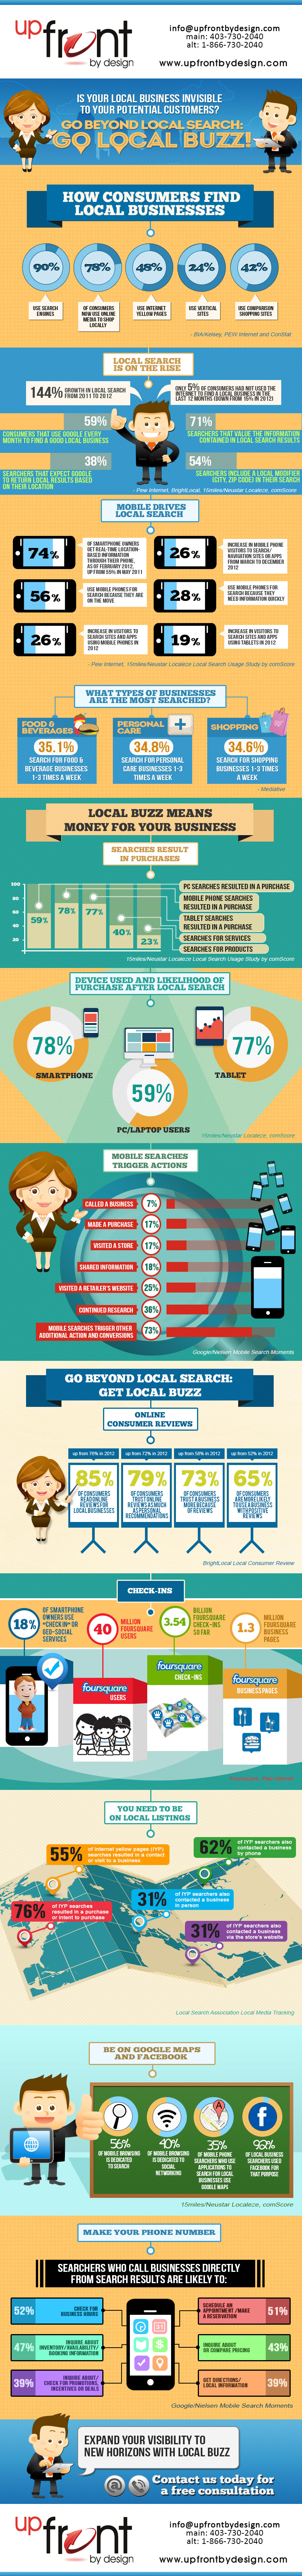 UpFrontByDesign.com-Local-Buzz-Infographic-2013